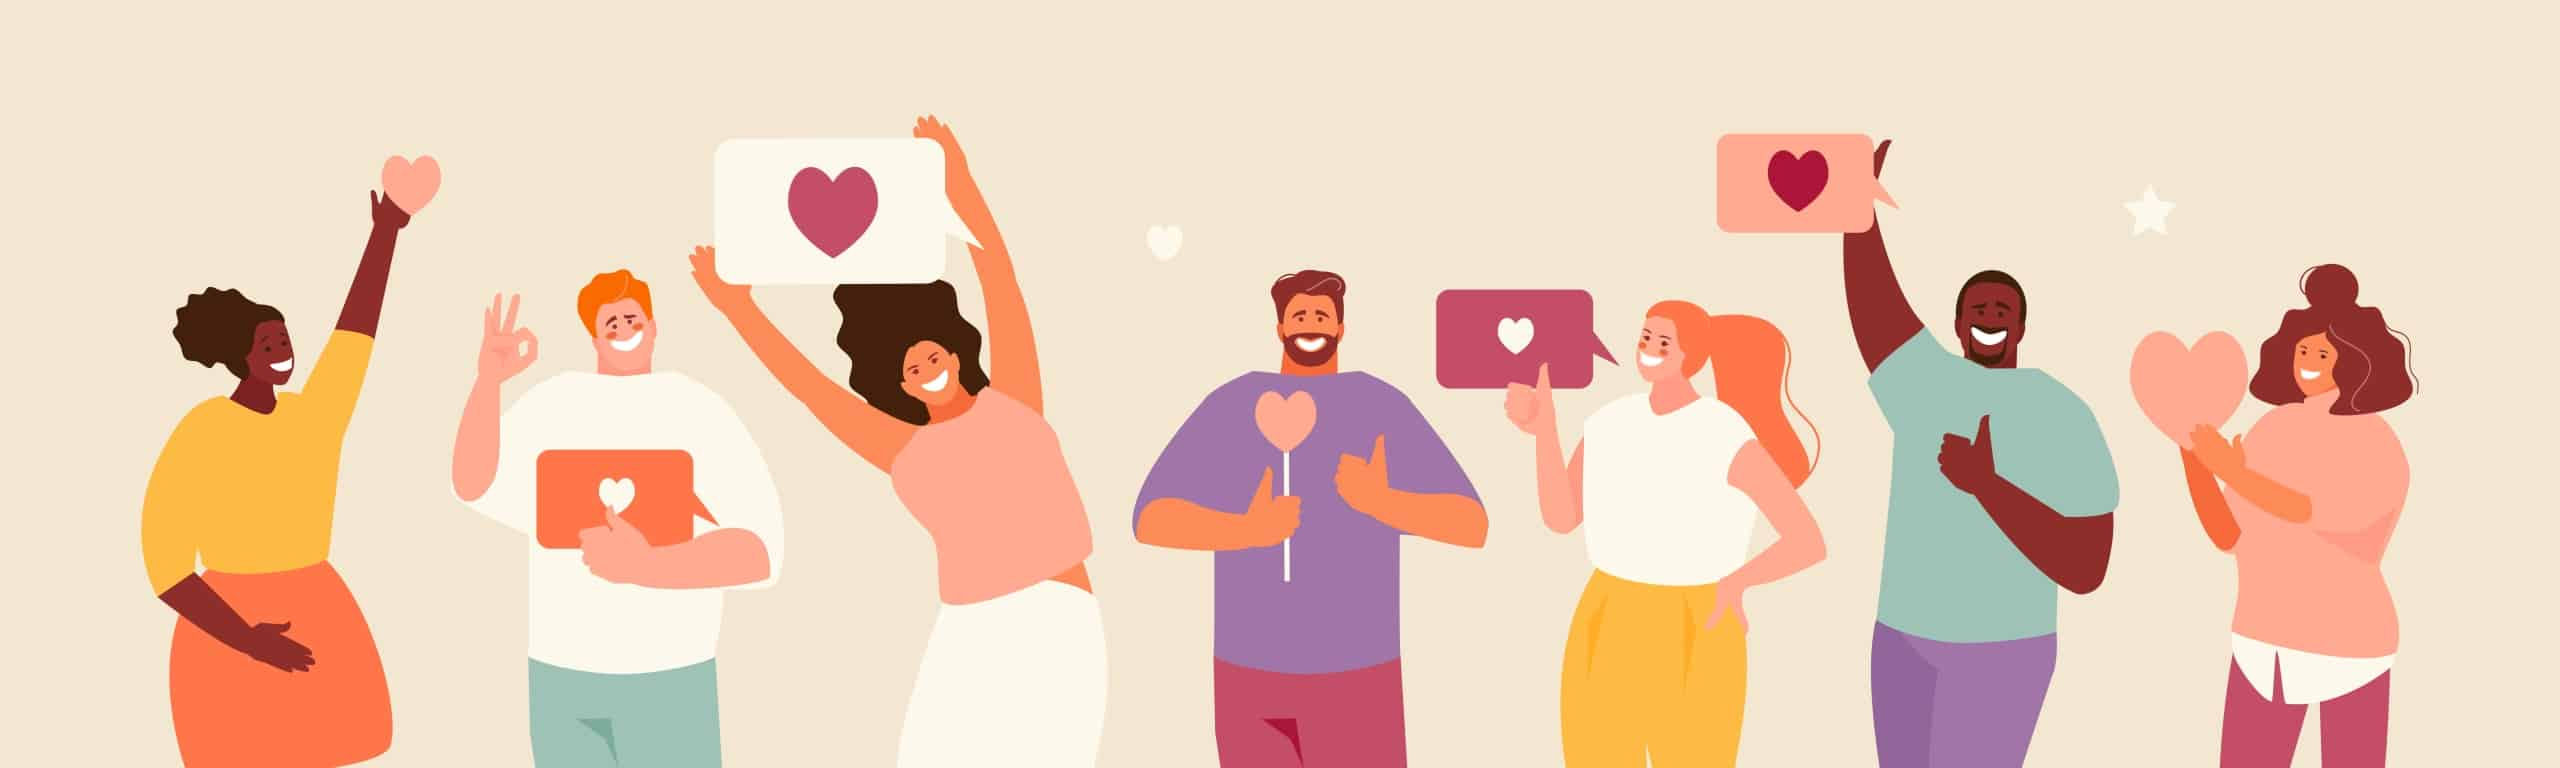 Illustration of happy people smiling and giving thumb's up